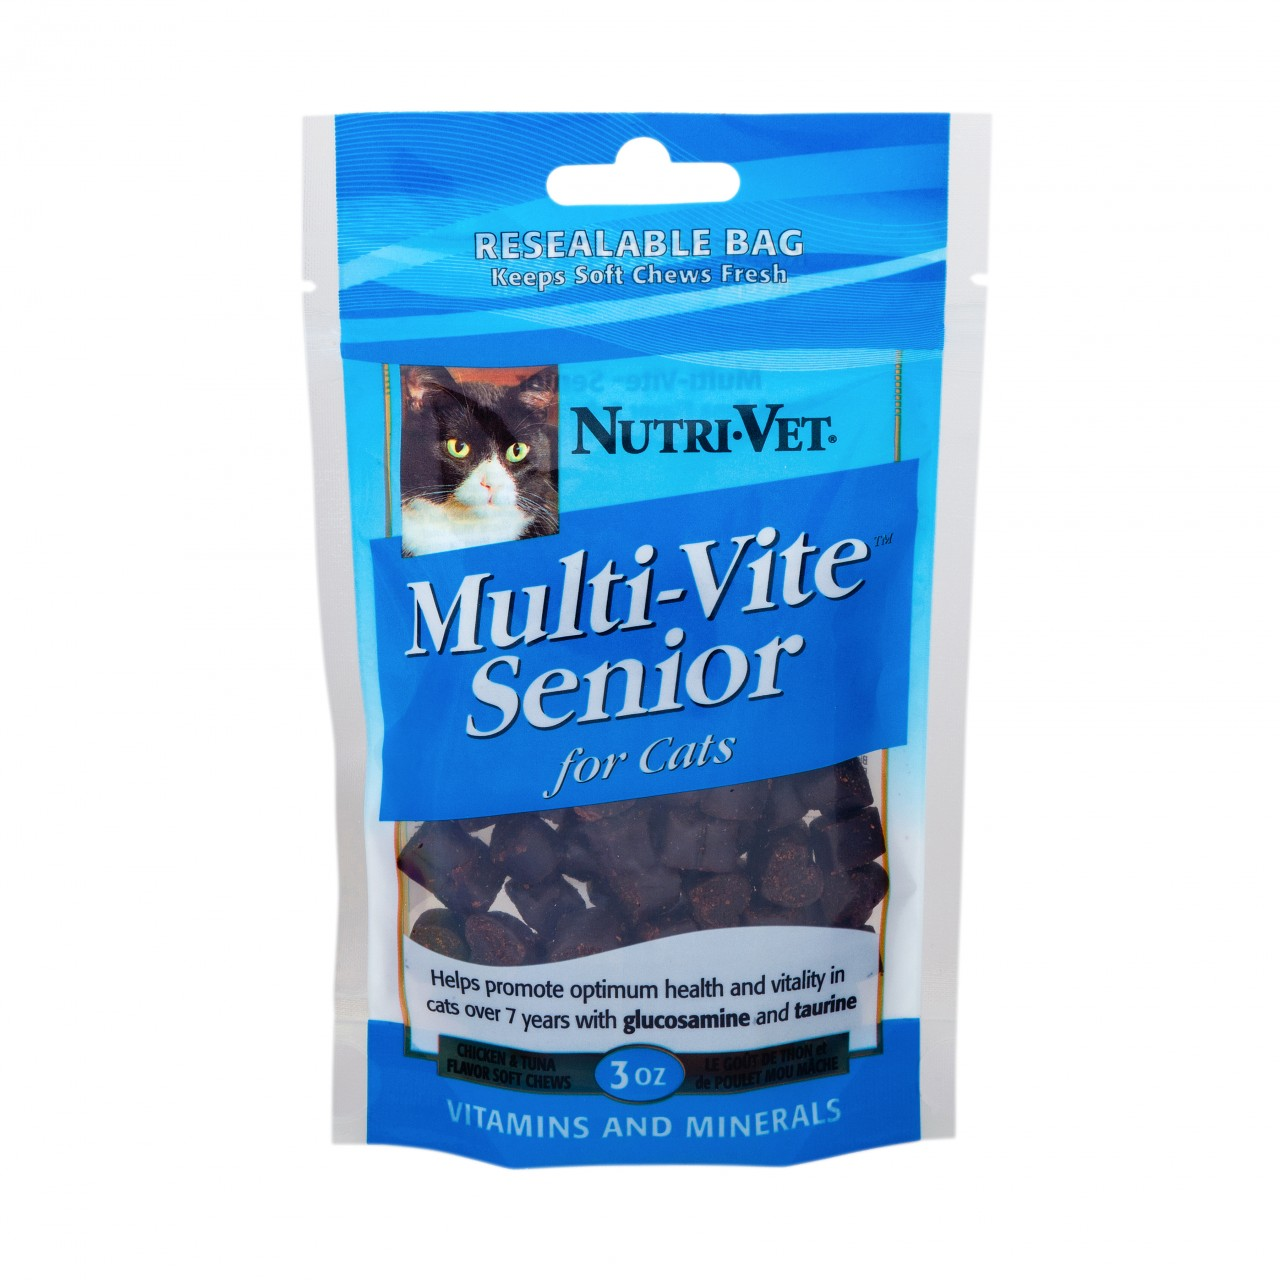 Nutri-Vet Mutli Vite Senior Chicken & Tuna Flavor Soft Chews for